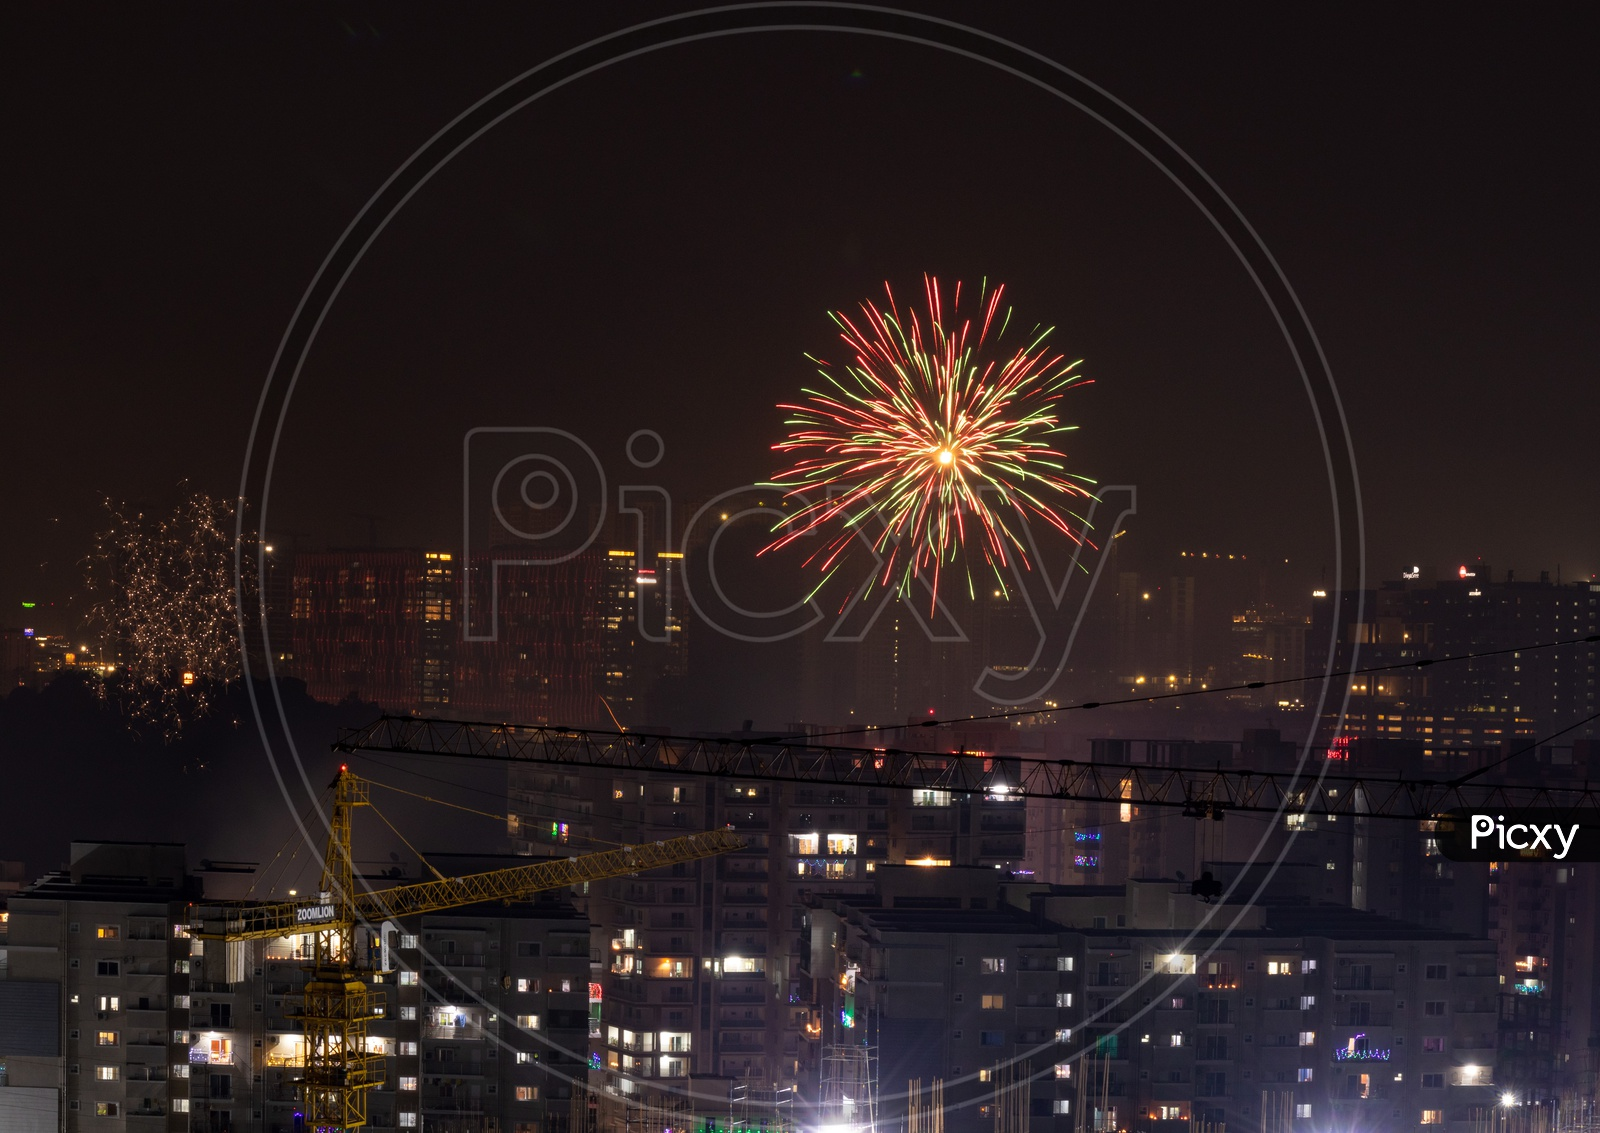 Indian Festival Diwali Deepavali Celebrations In Hyderabad With Crackers Bursting In The Sky On Top Of High Rise Buildings